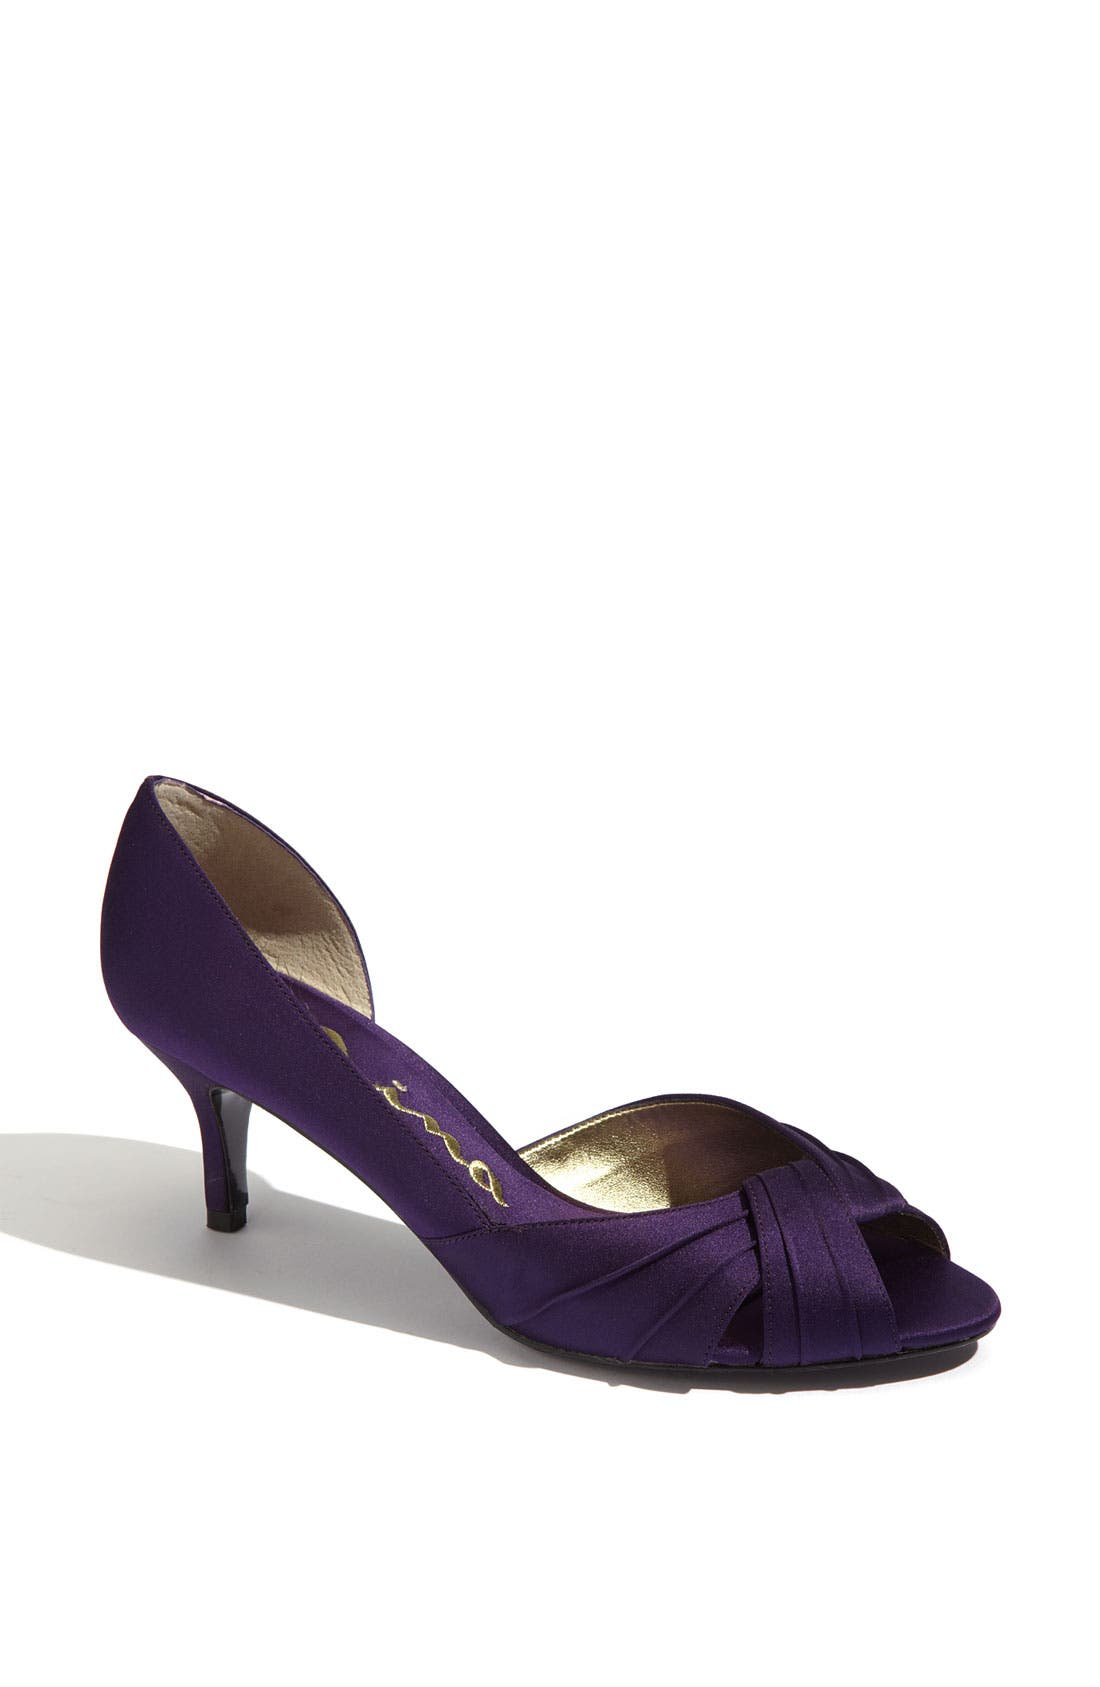 'Culver' d'Orsay Pump,                         Main,                         color,